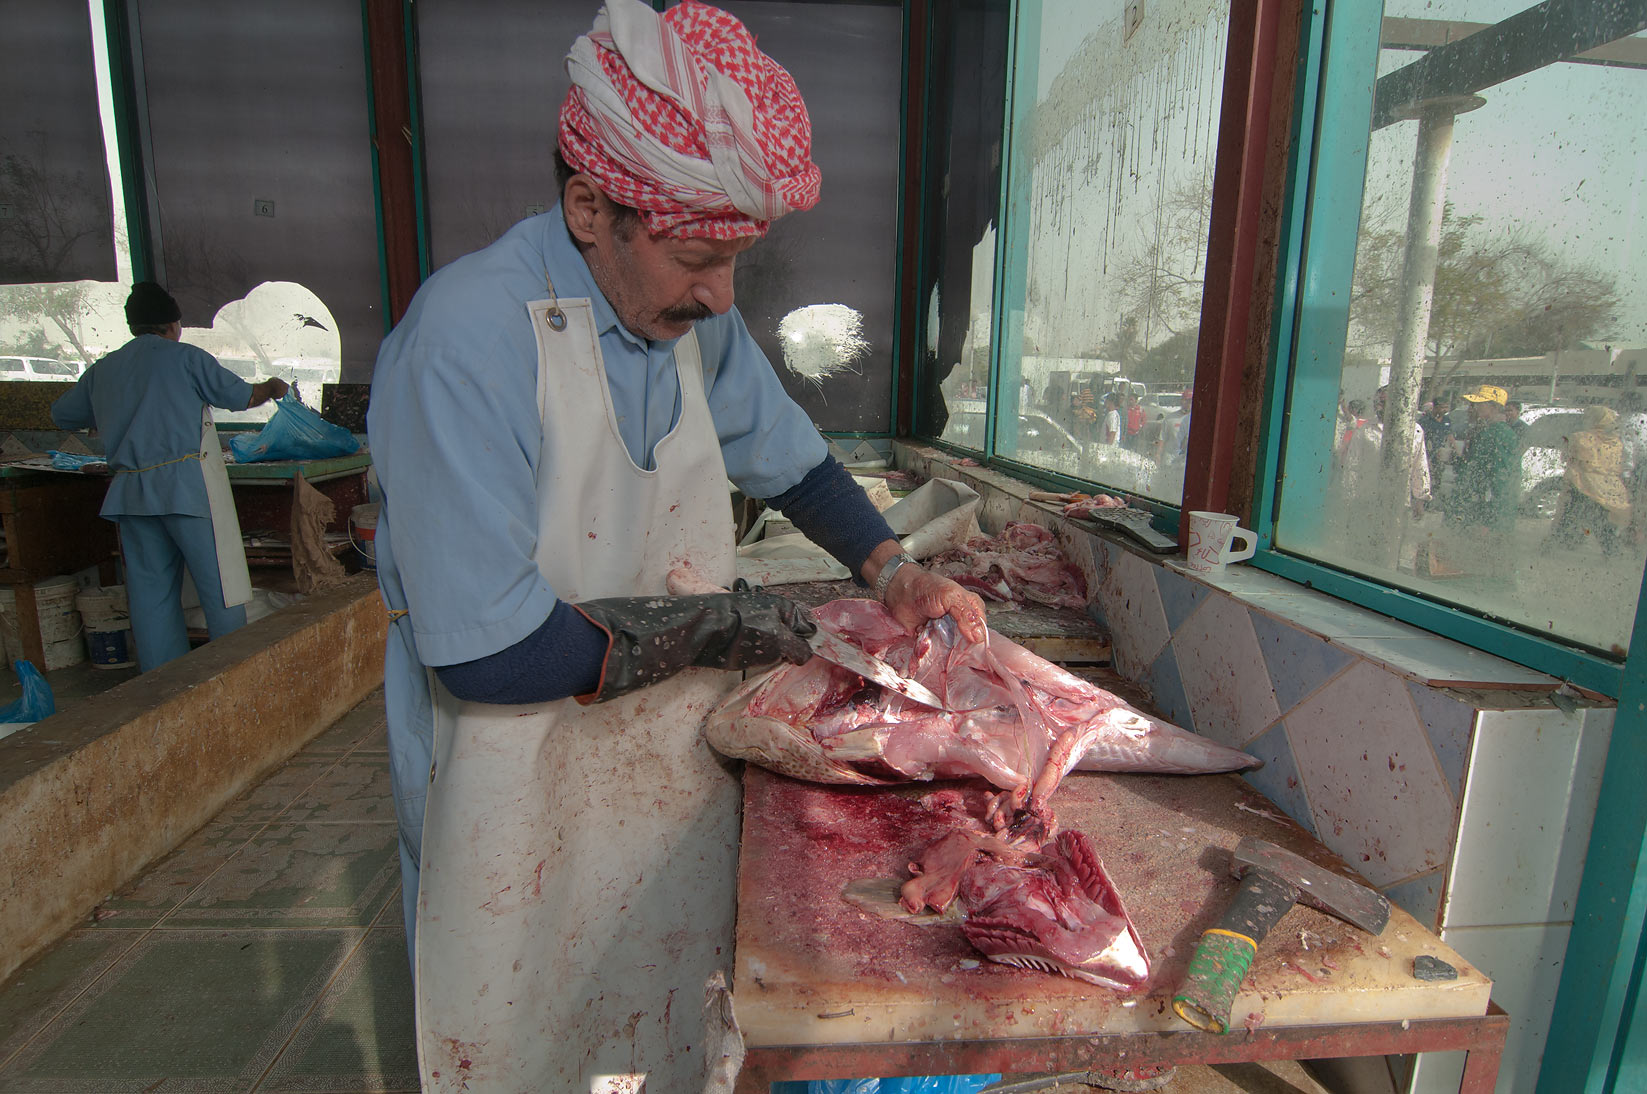 Fish gutting in Wholesale Fish Market. Doha, Qatar